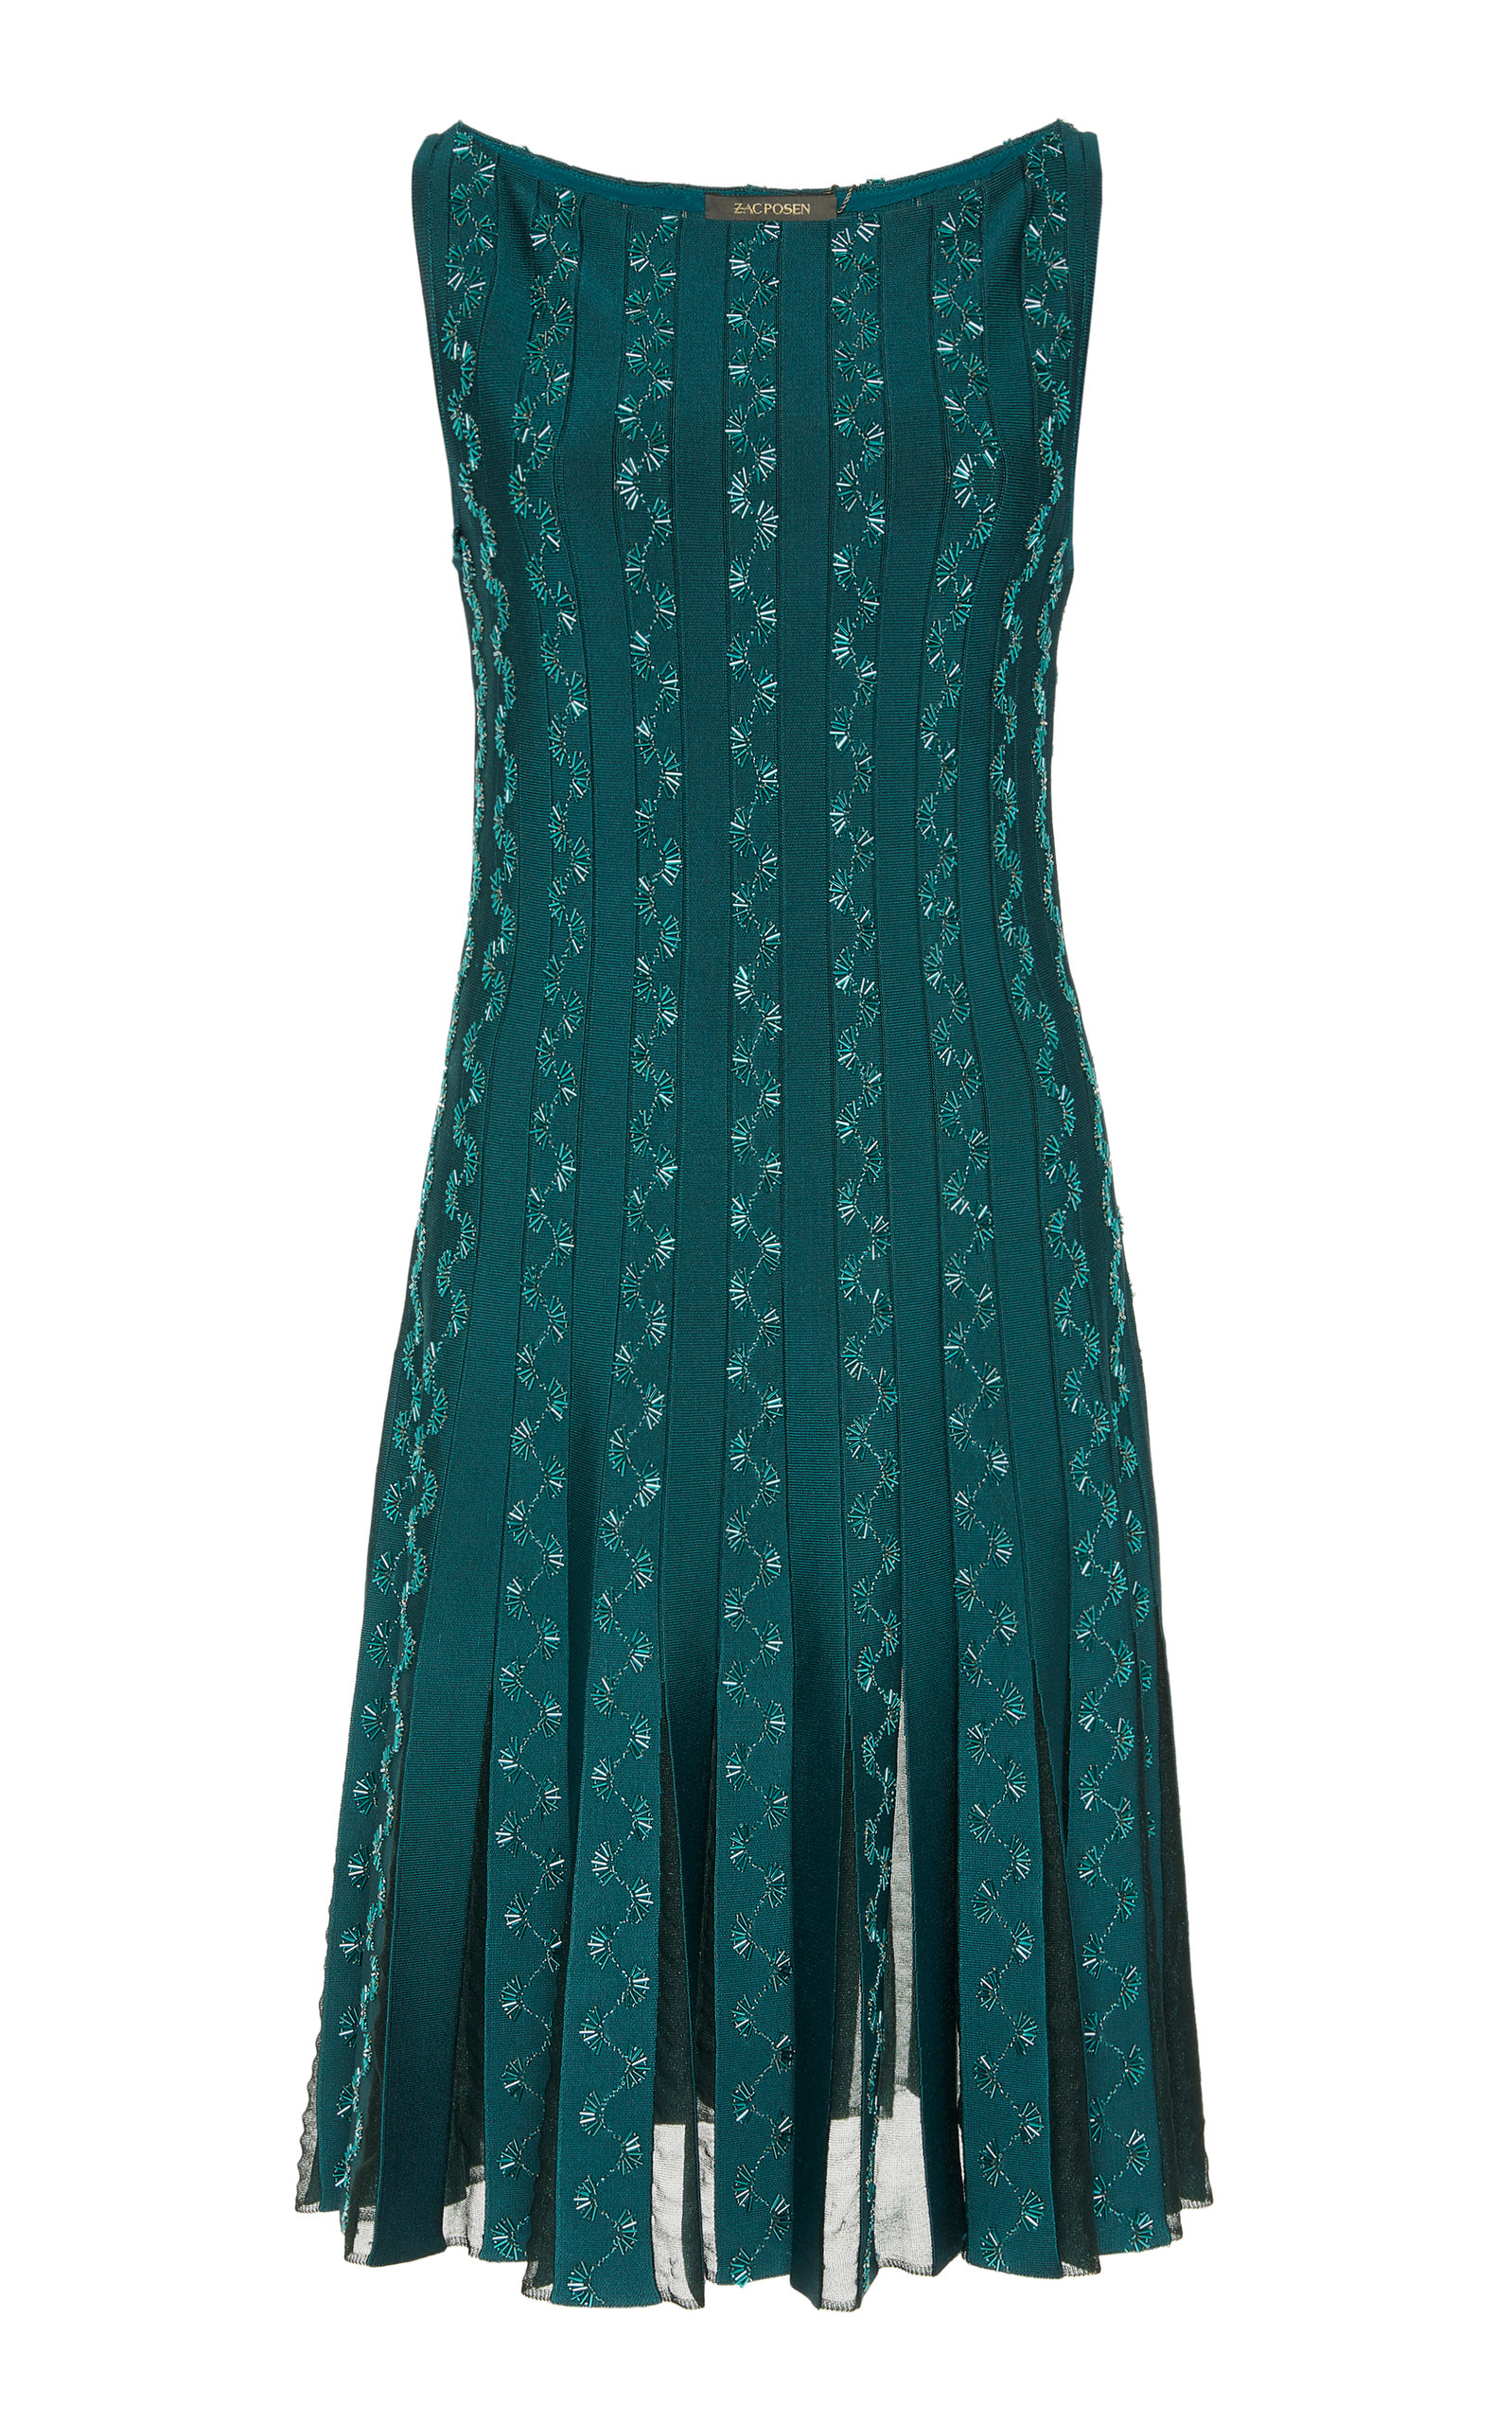 Buy Zac Posen Embroidered Lace-Panelled Mini Dress online, shop Zac Posen at the best price